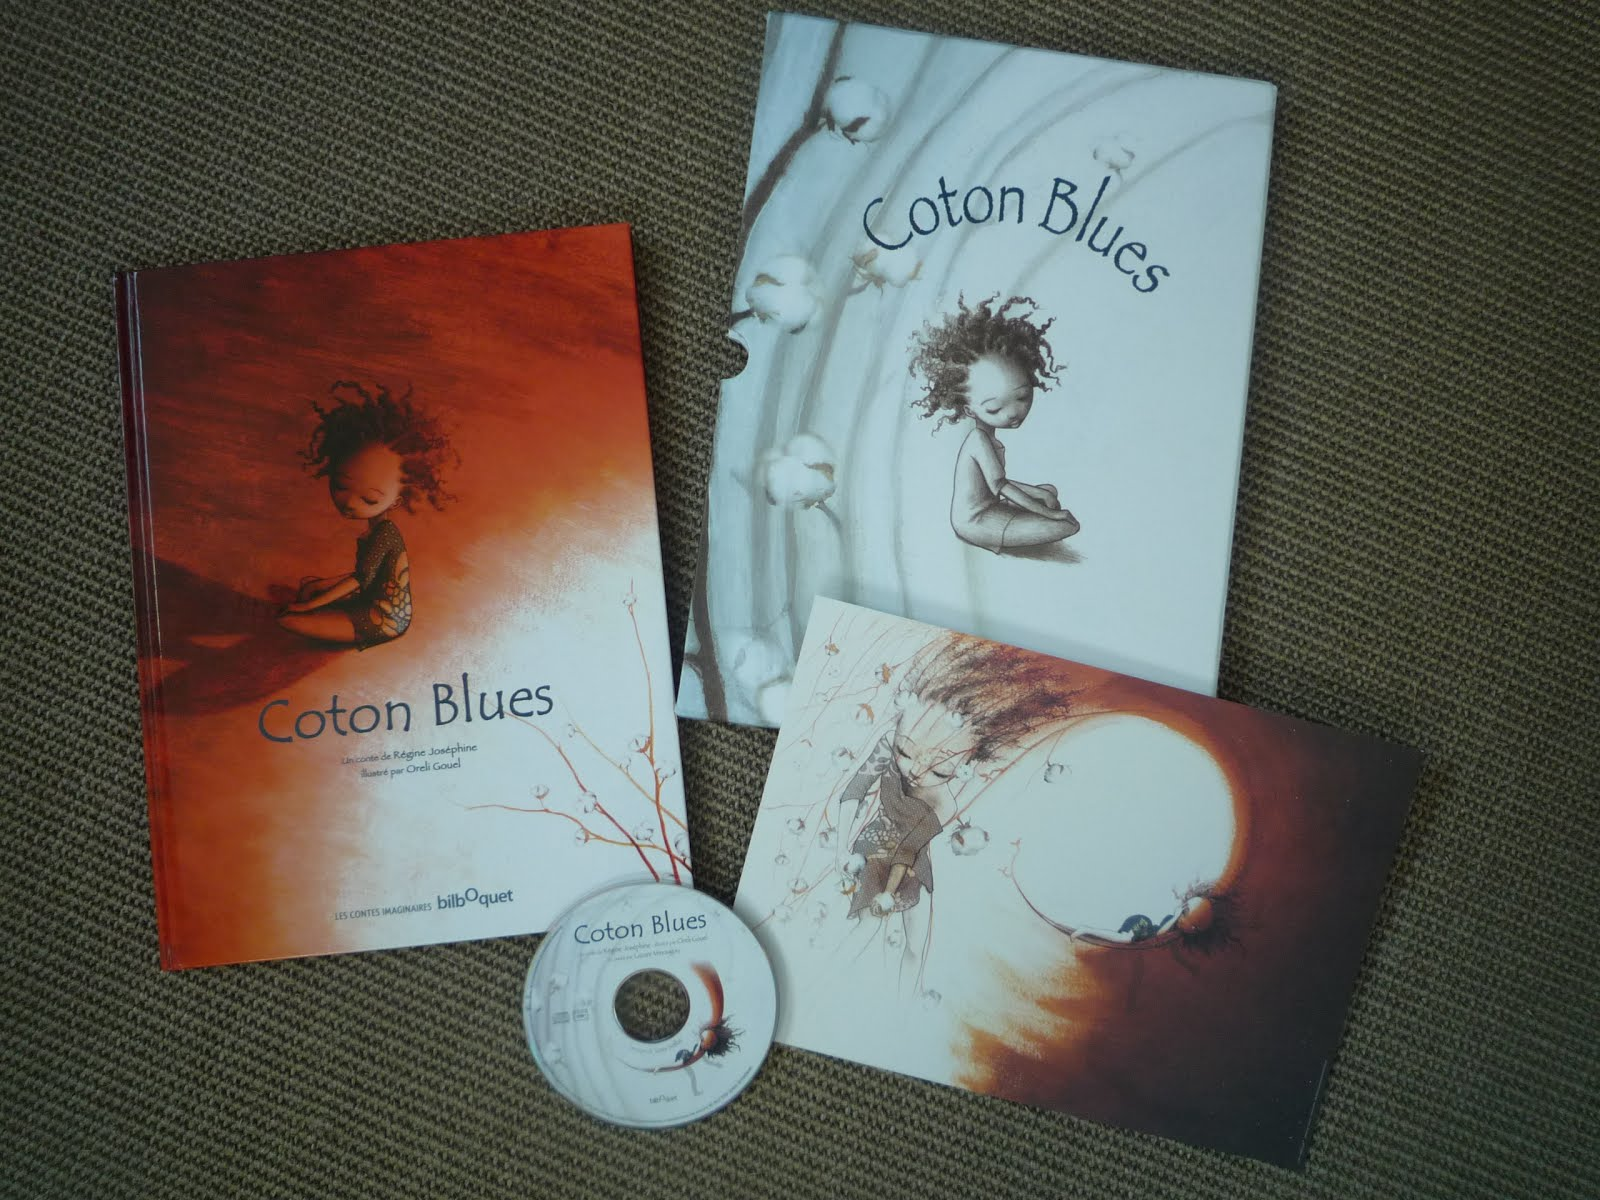 Coton Blues (Album + CD)